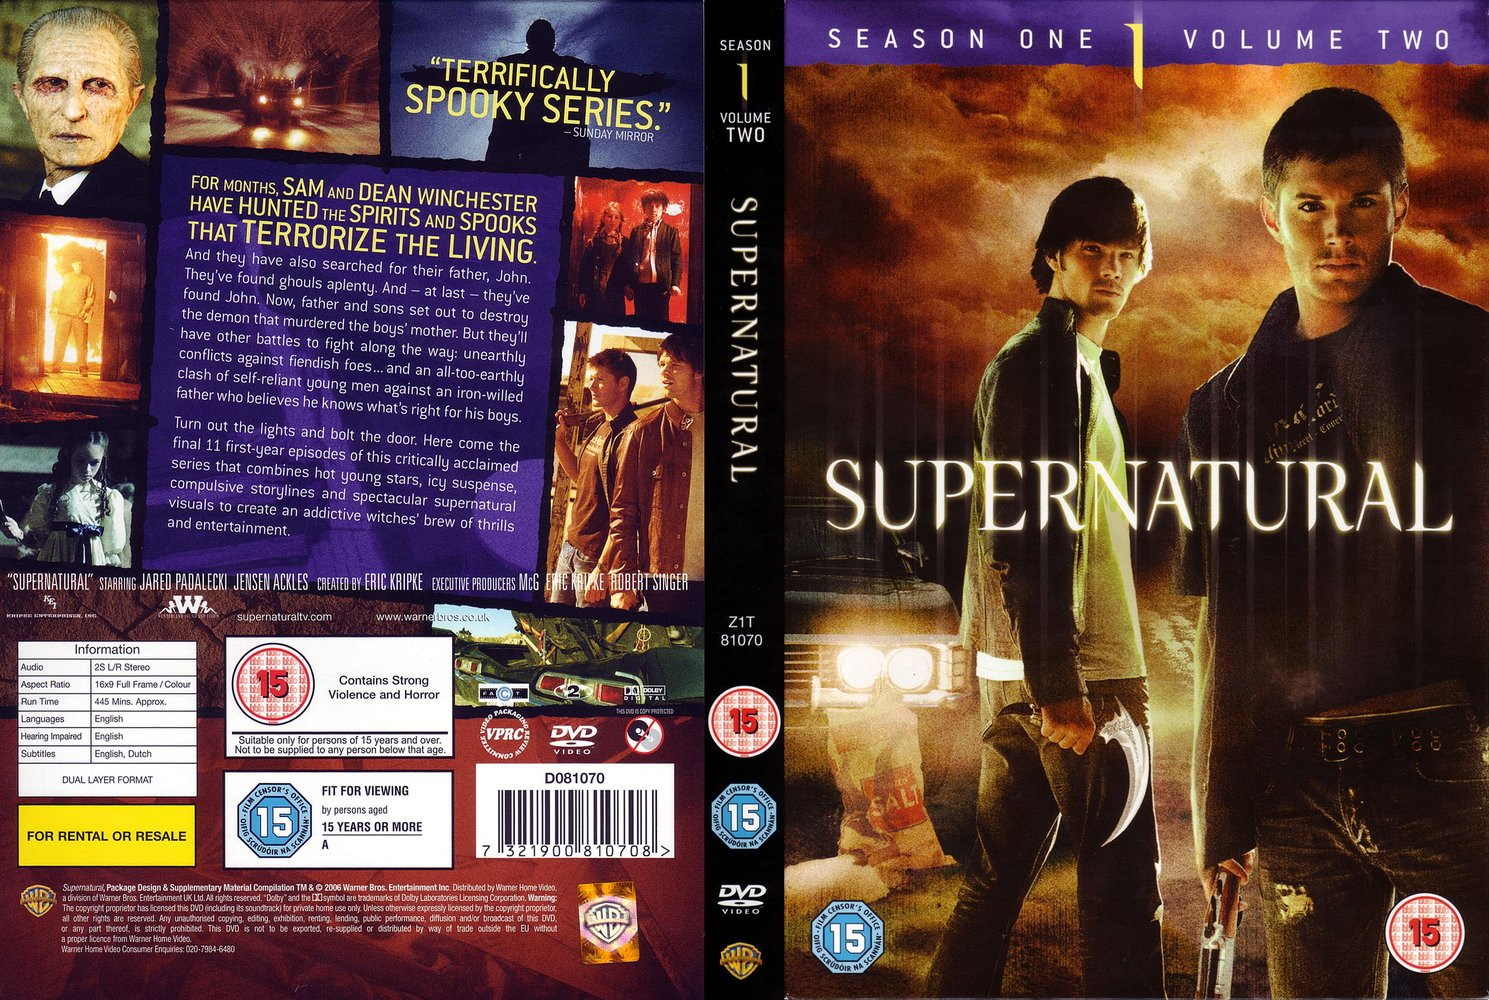 Images Dvd Covers Supernatural Region Beautiful Jodelle Image And